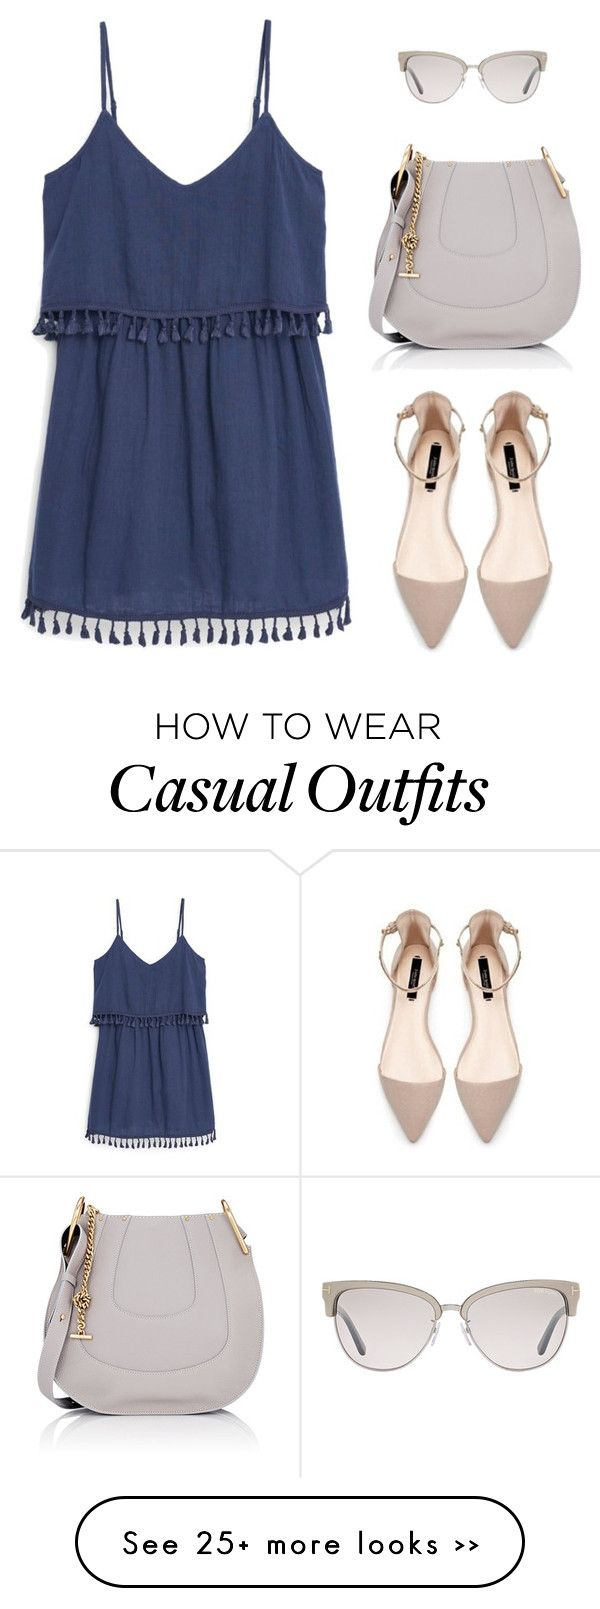 """""""Casual boho & chic"""" by marta-isabella on Polyvore featuring MANGO, Chloé and Tom Ford"""